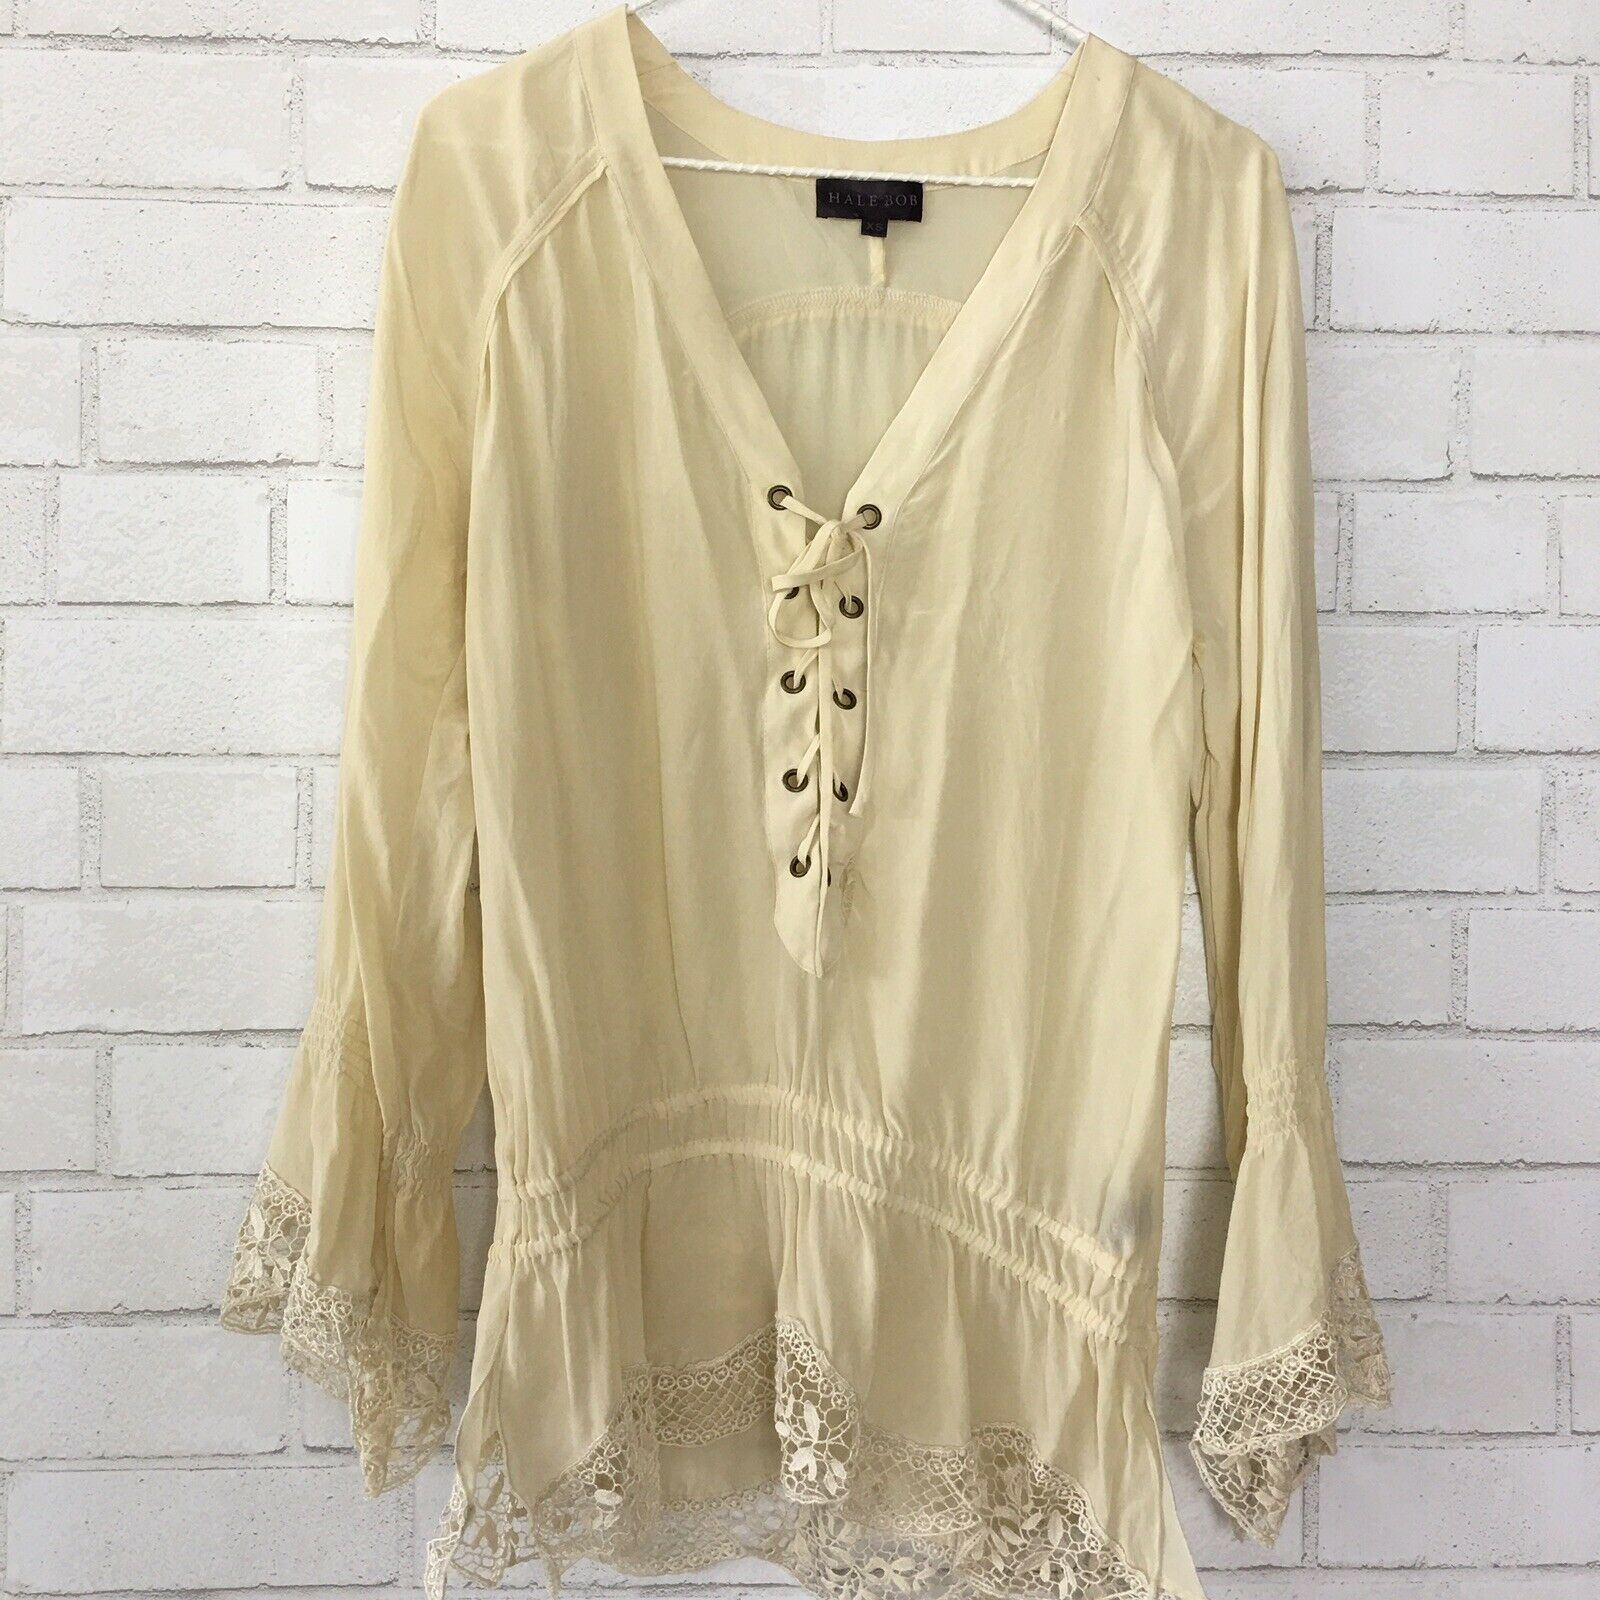 HALE BOB XS Silk Sheer Lace Up Peasant Top Blouse Bell Sleeve Boho Festival